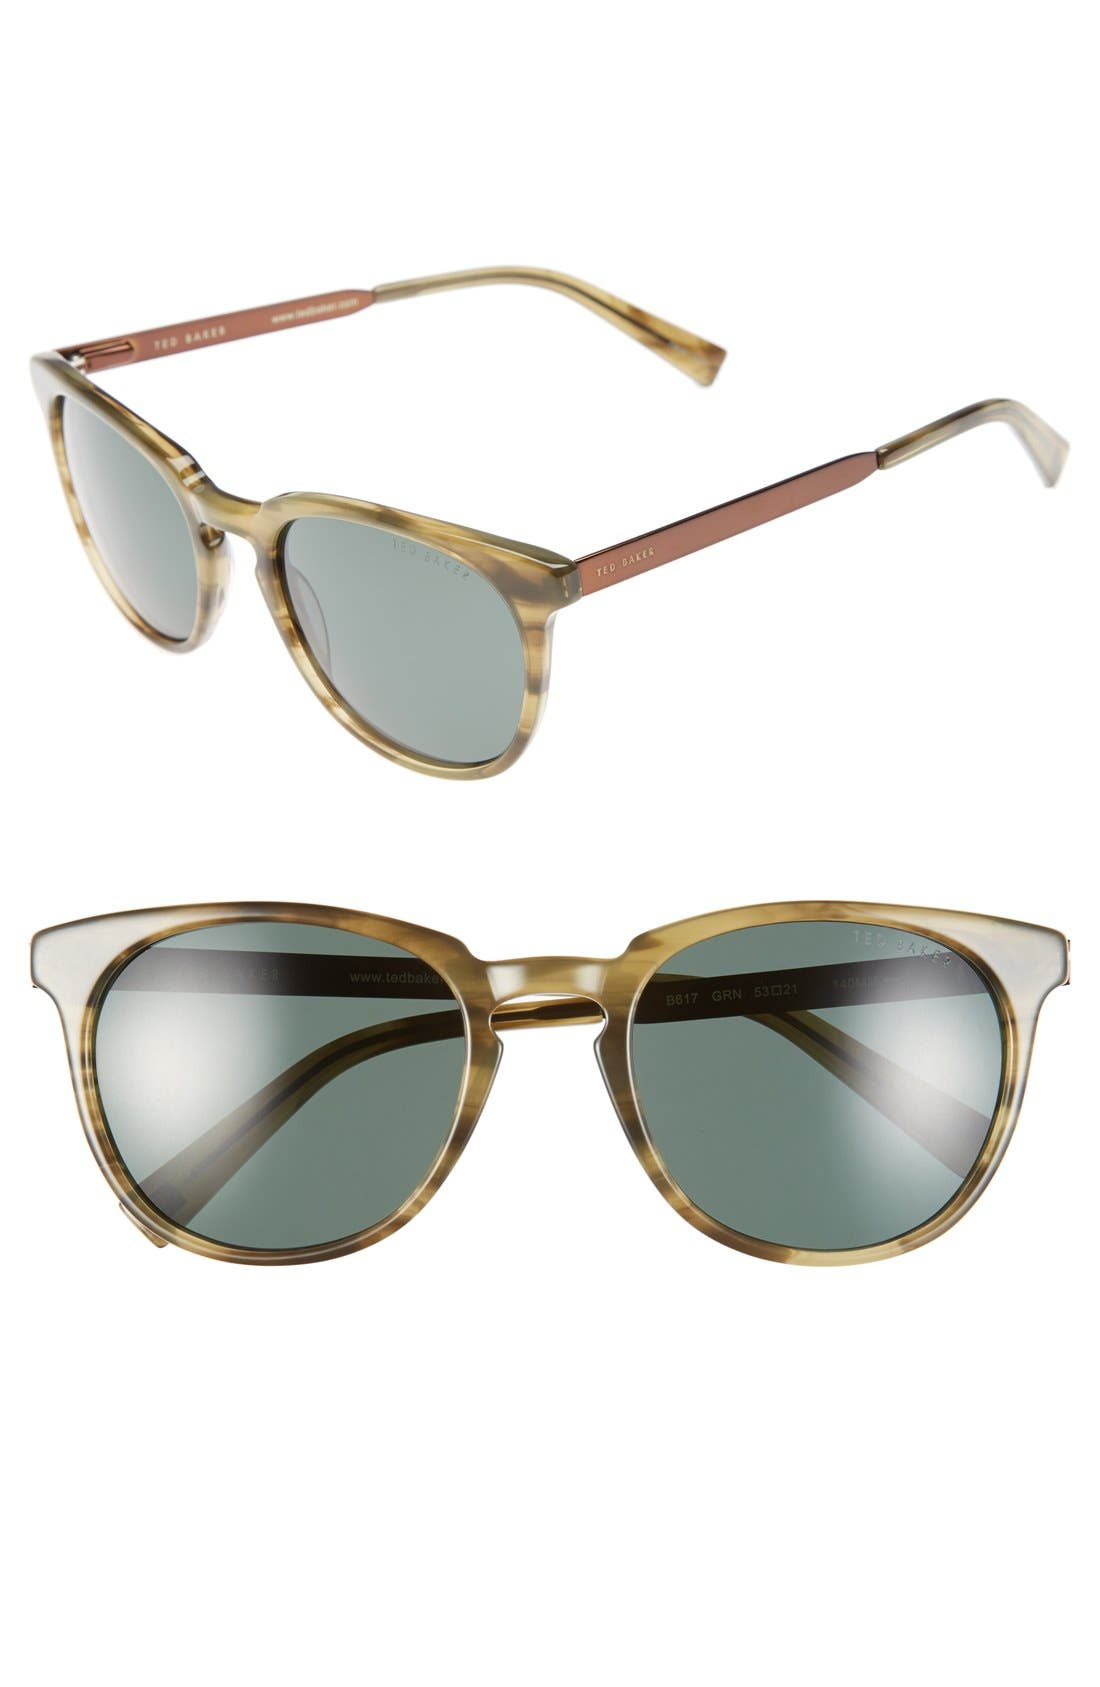 Ted Baker London 53mm Round Sunglasses